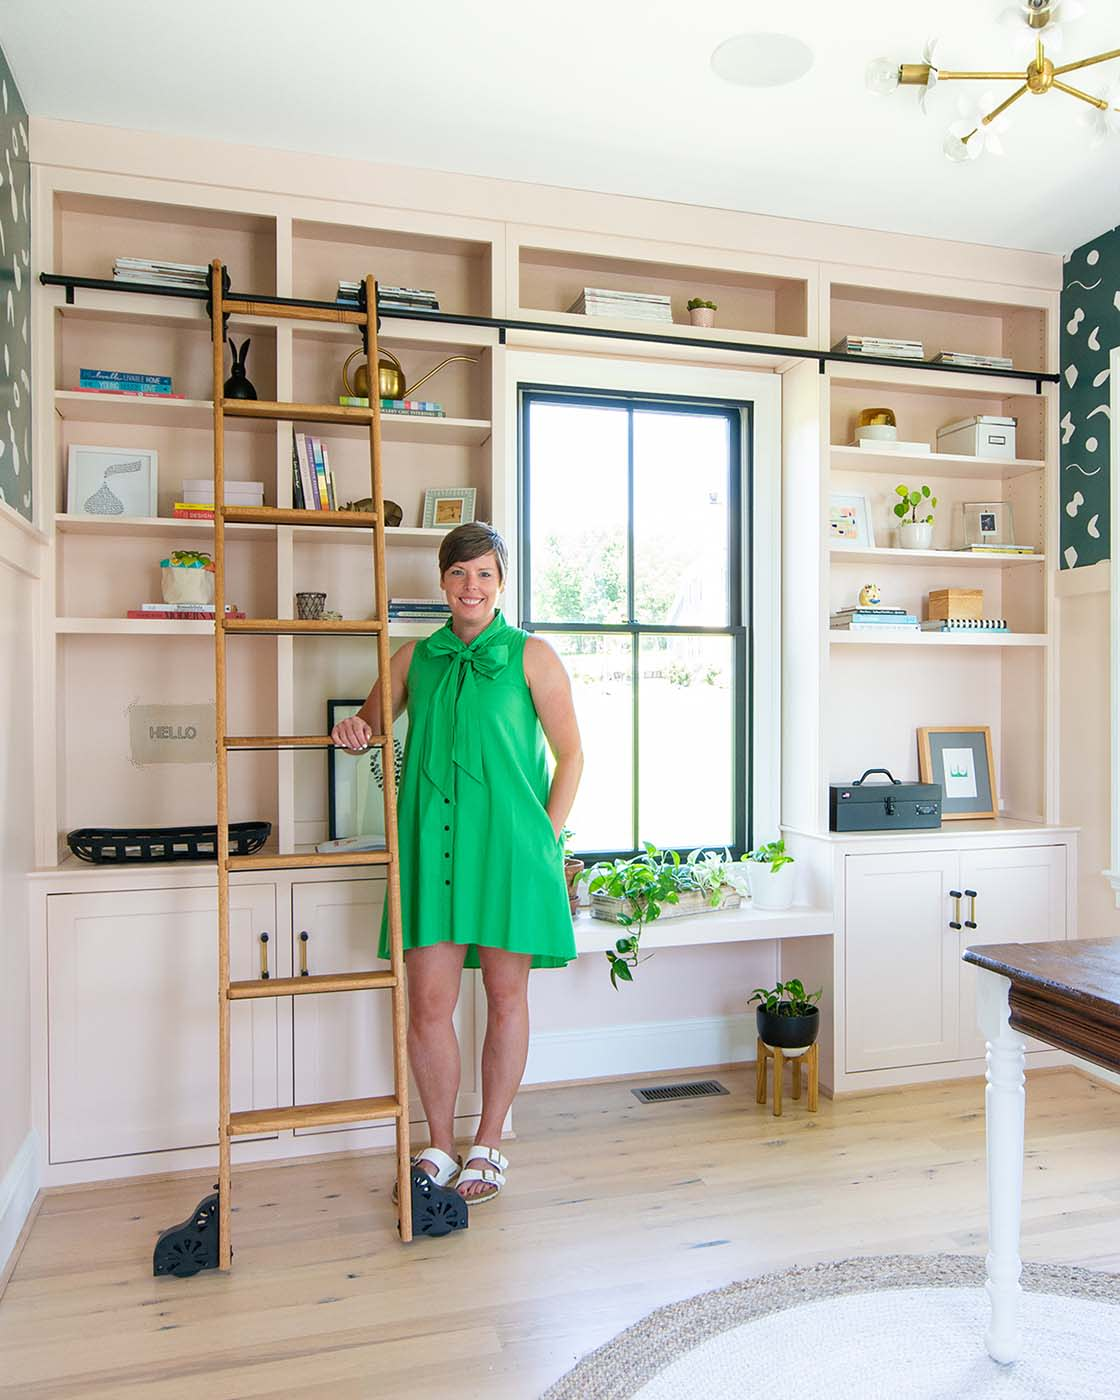 What is your favorite element in the room? Attaching a rolling library ladder to the built-in wall was a splurge and feels like a bit of a luxury but I must say, I can't imagine the space without it. The ladder adds another wood element to the space and is like the crowning jewel of the project.  Any decor tips you'd like to share? If you have existing traditional furnishings, make more modern choices with your wall coverings, hardware, and light fixtures. Pairing my Great Grandmother's table with an unexpected paint color and bold wallpaper feels like the best kind of modern mixing.